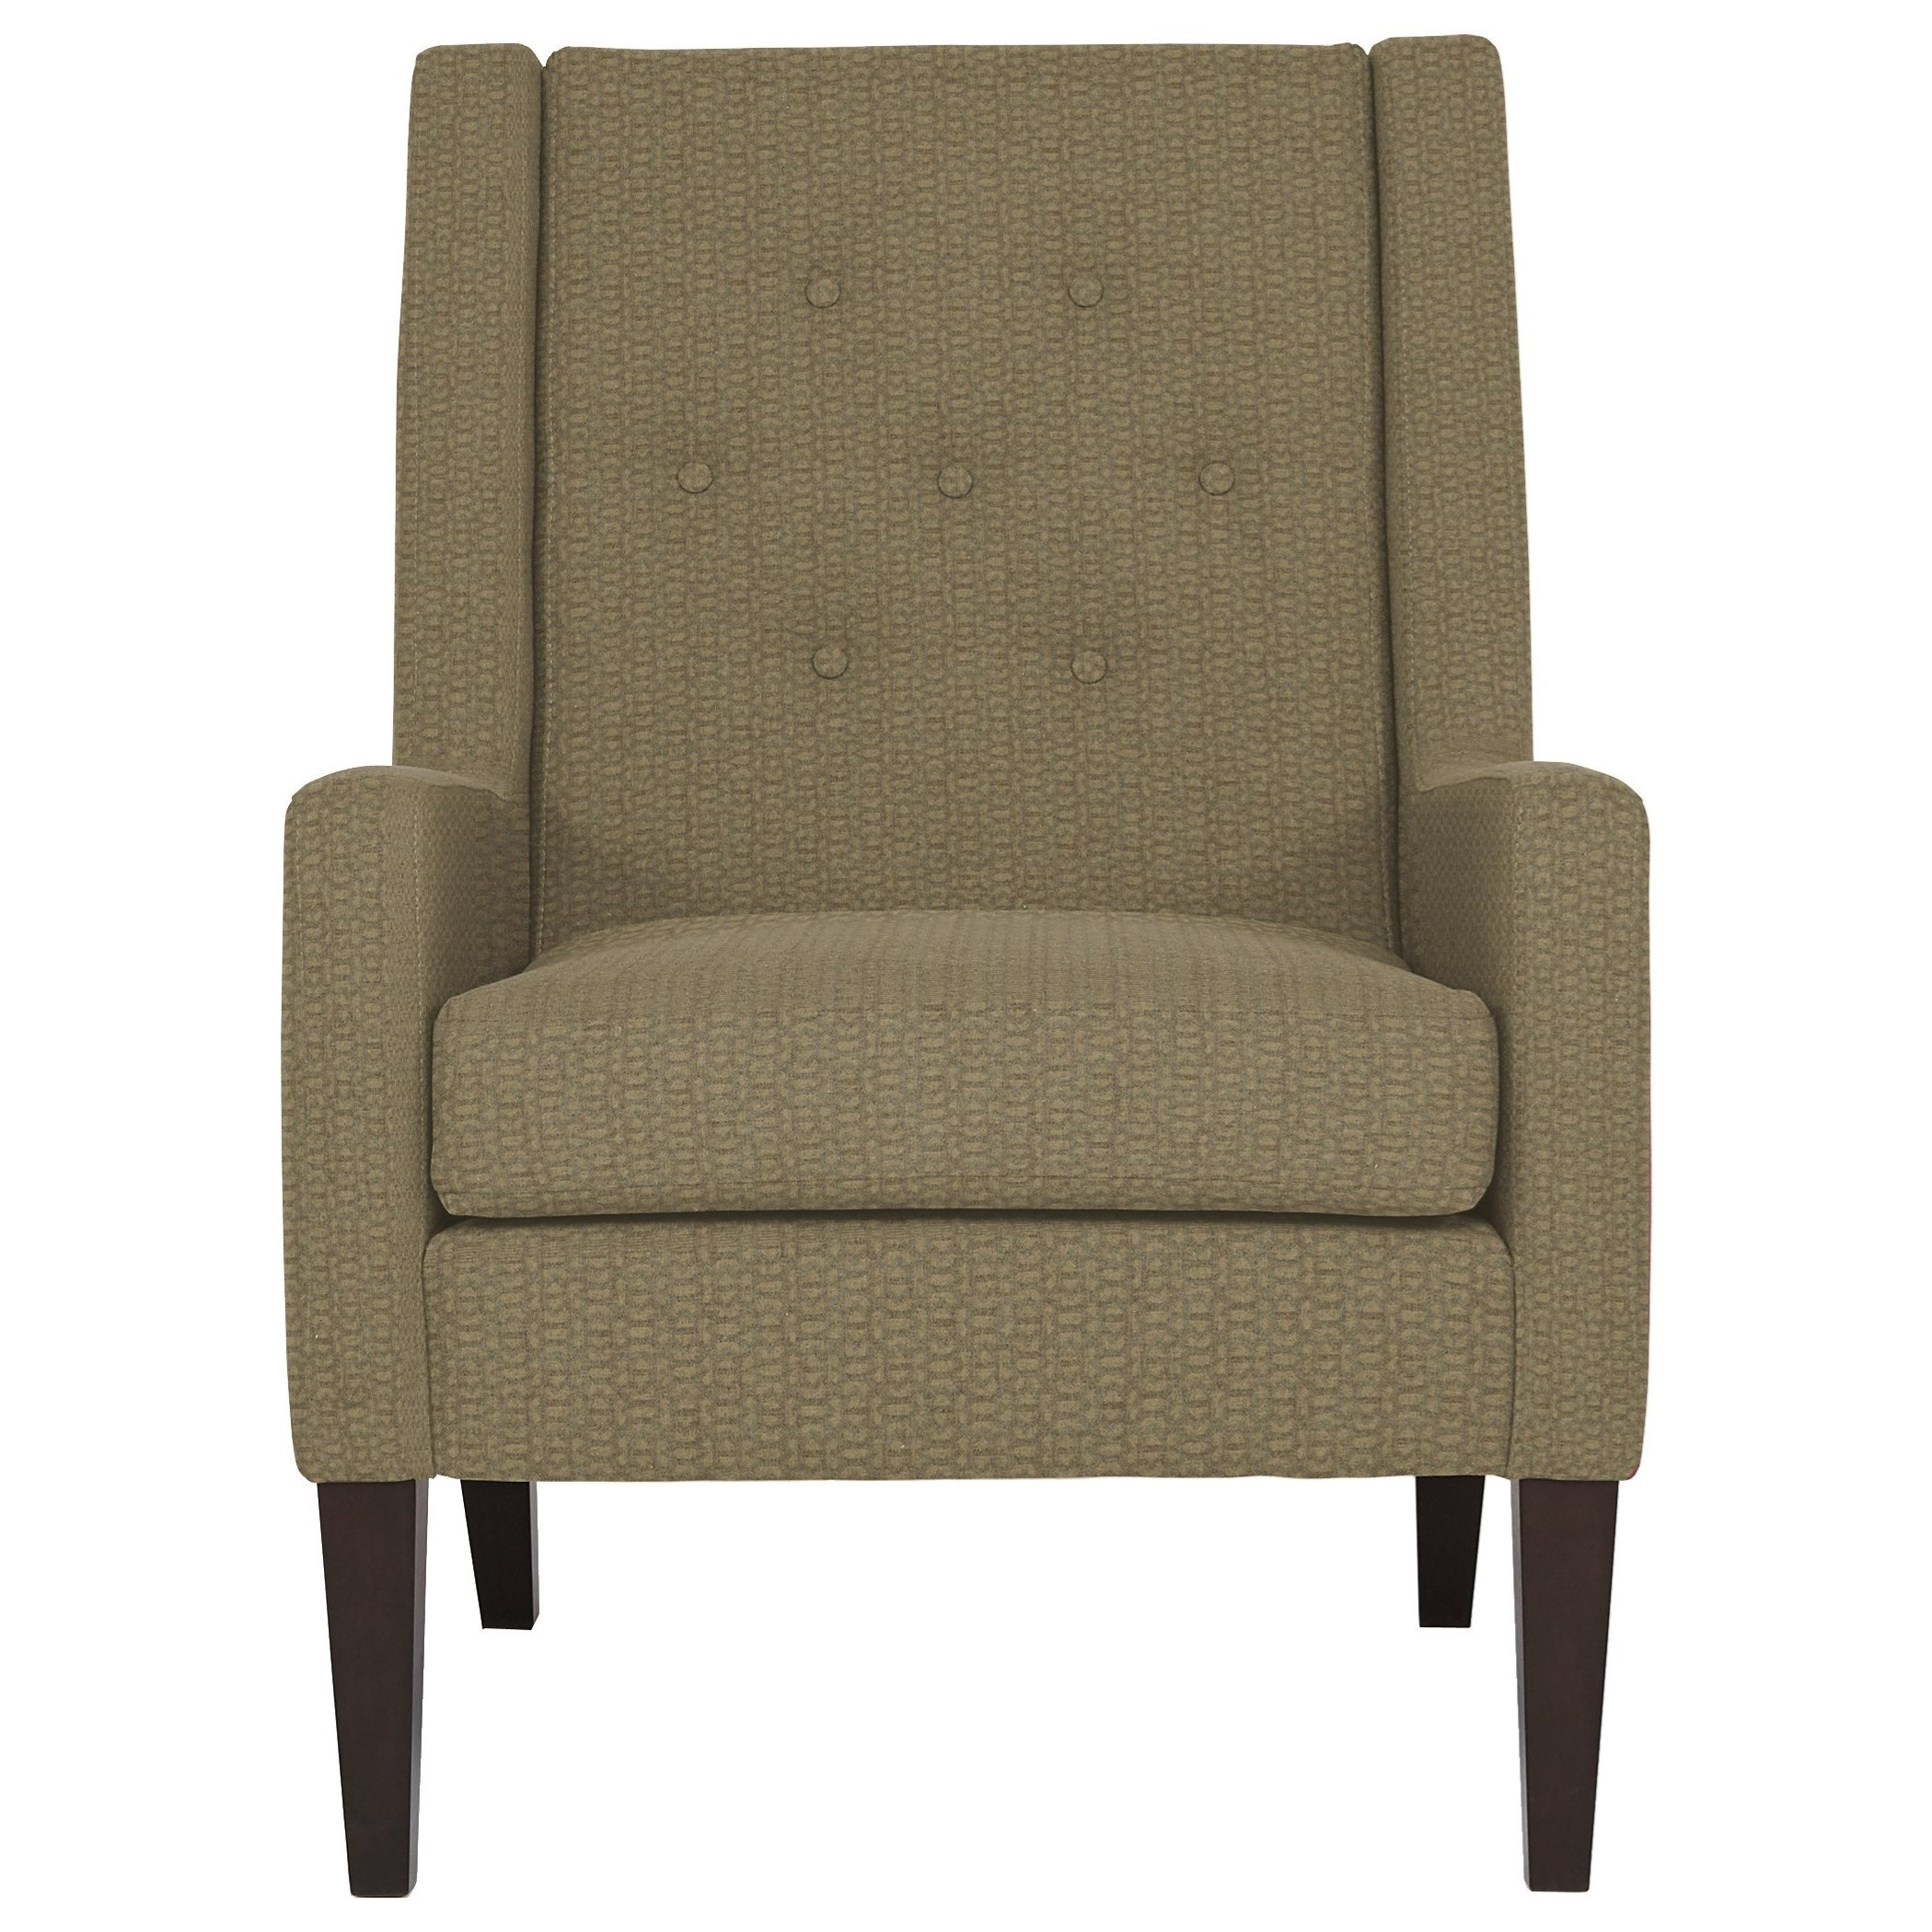 Best Home Furnishings Chairs - Accent Chair - Item Number: 2510E-21903